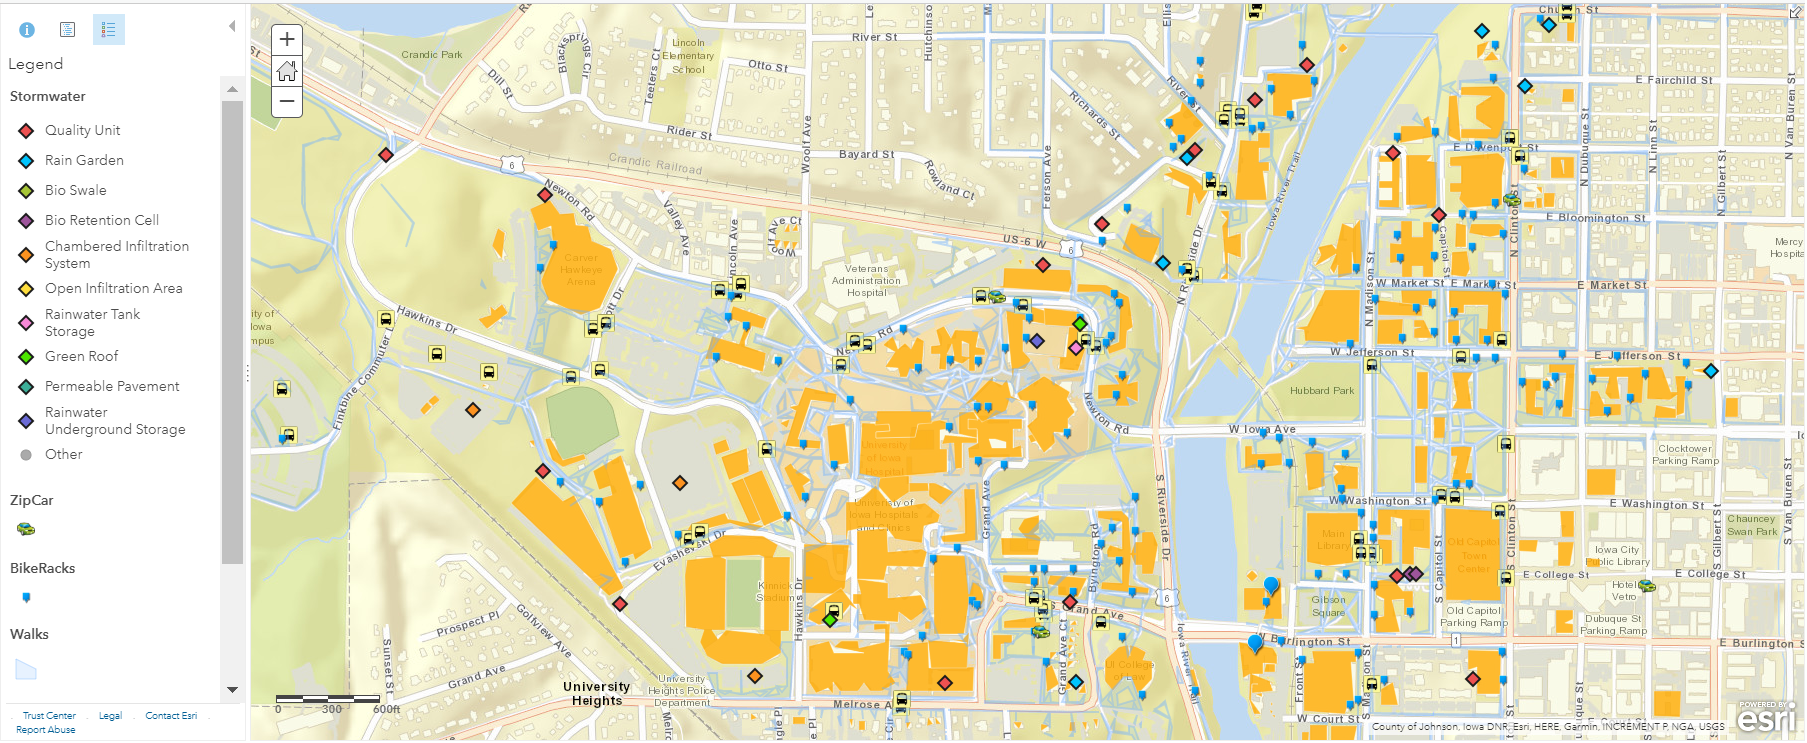 university of iowa map of campus Sustainability Maps Office Of Sustainability And The Environment